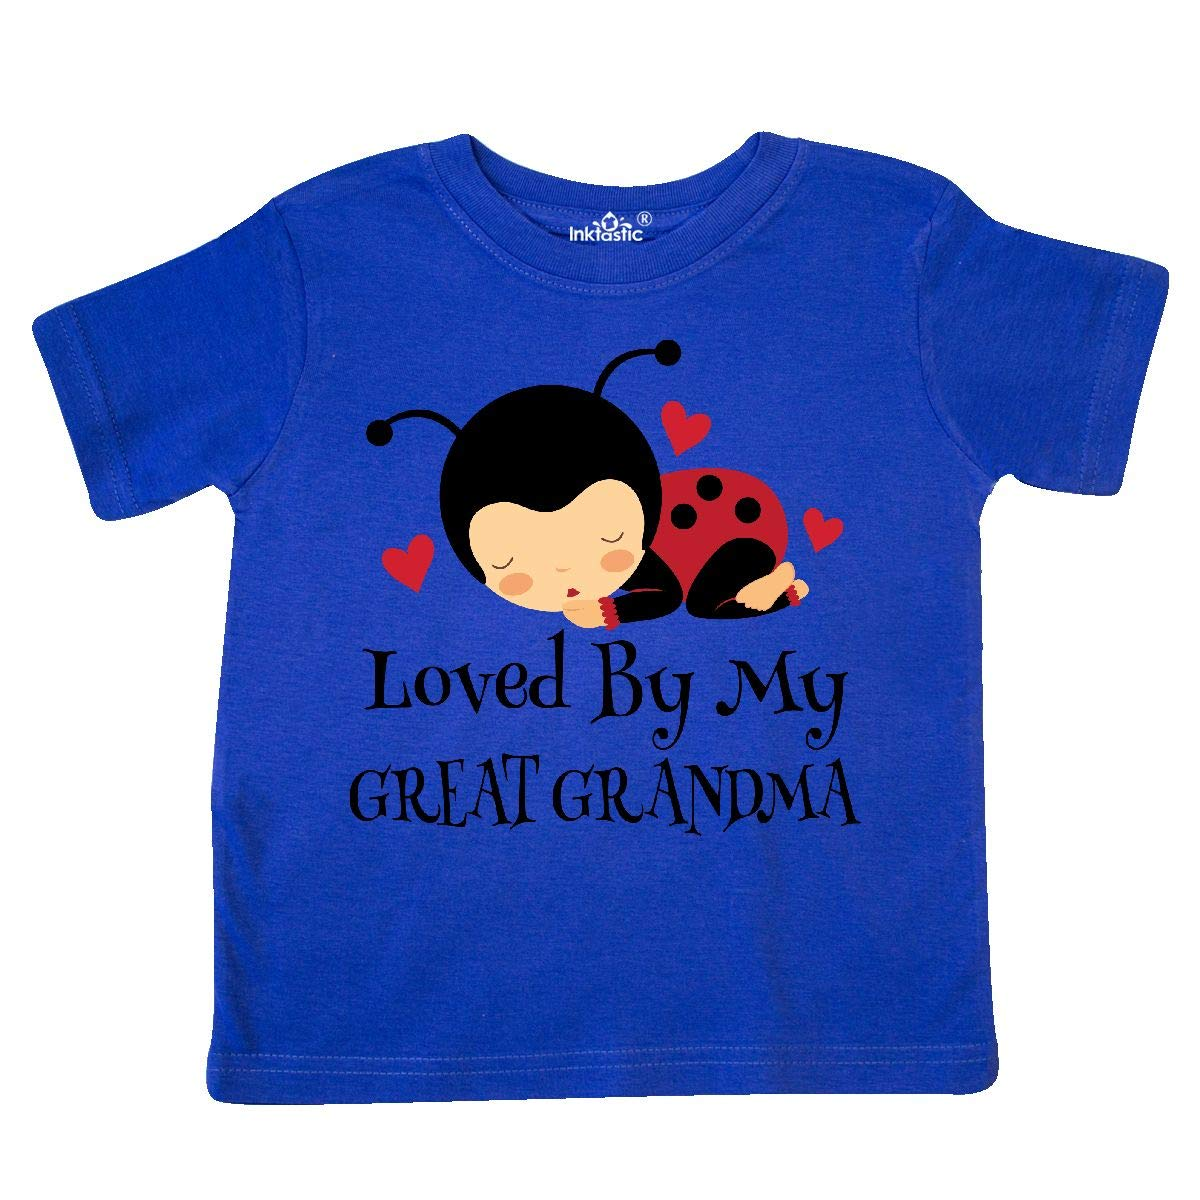 inktastic Loved by My Great Grandma Toddler T-Shirt